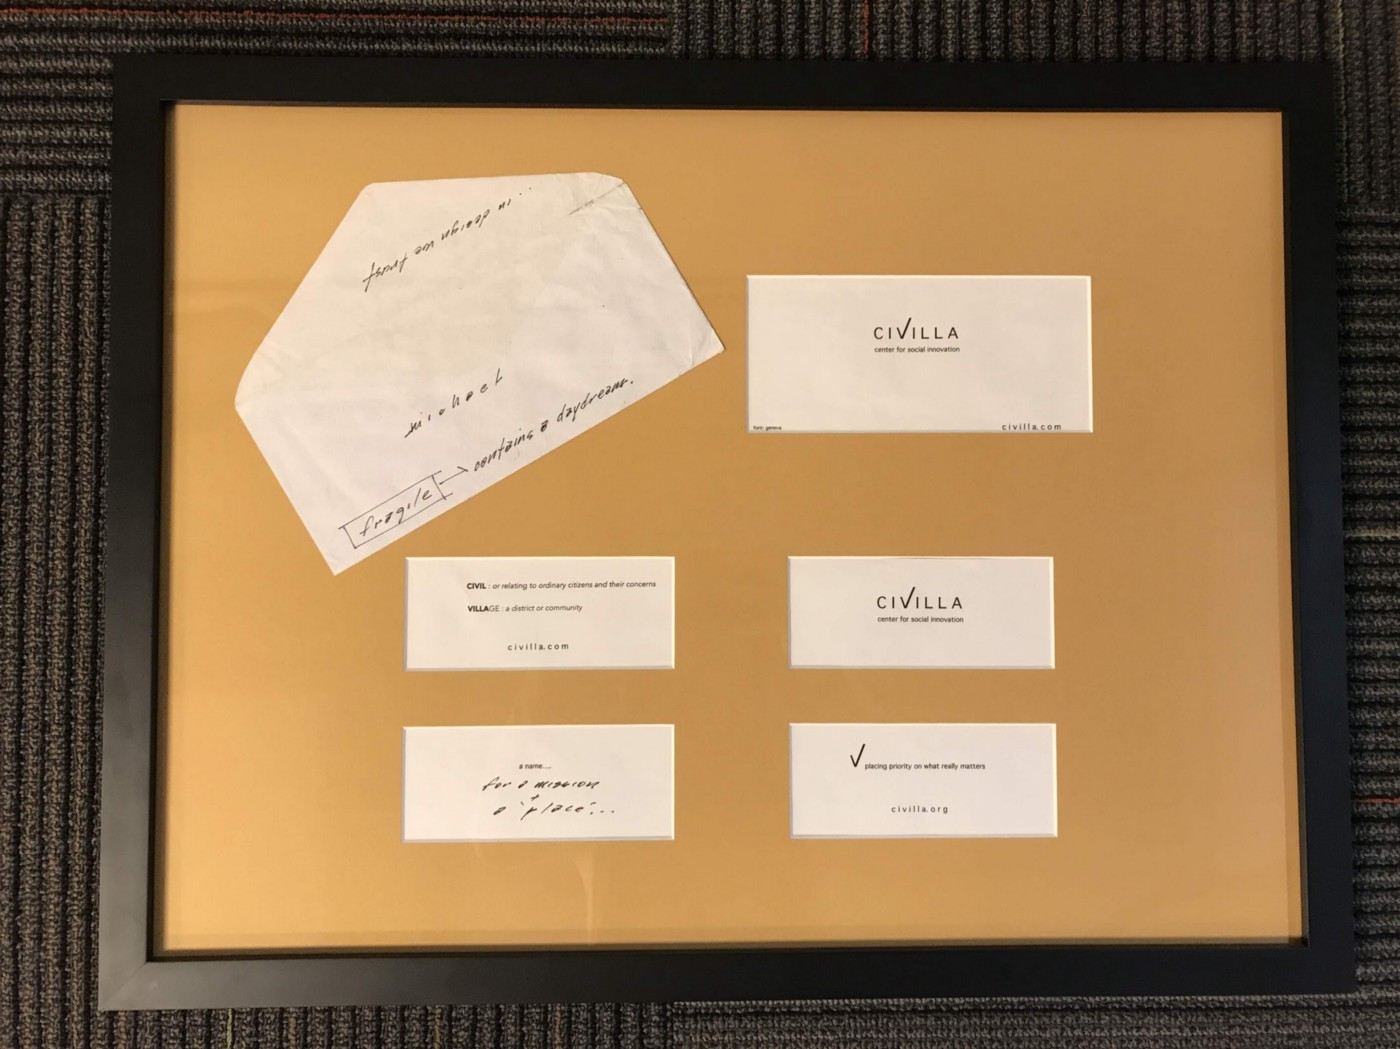 The original envelope Paul Seibert gave to Mike Brennan, our CEO, revealing the name he had dreamt up for the organization that would become Civilla.